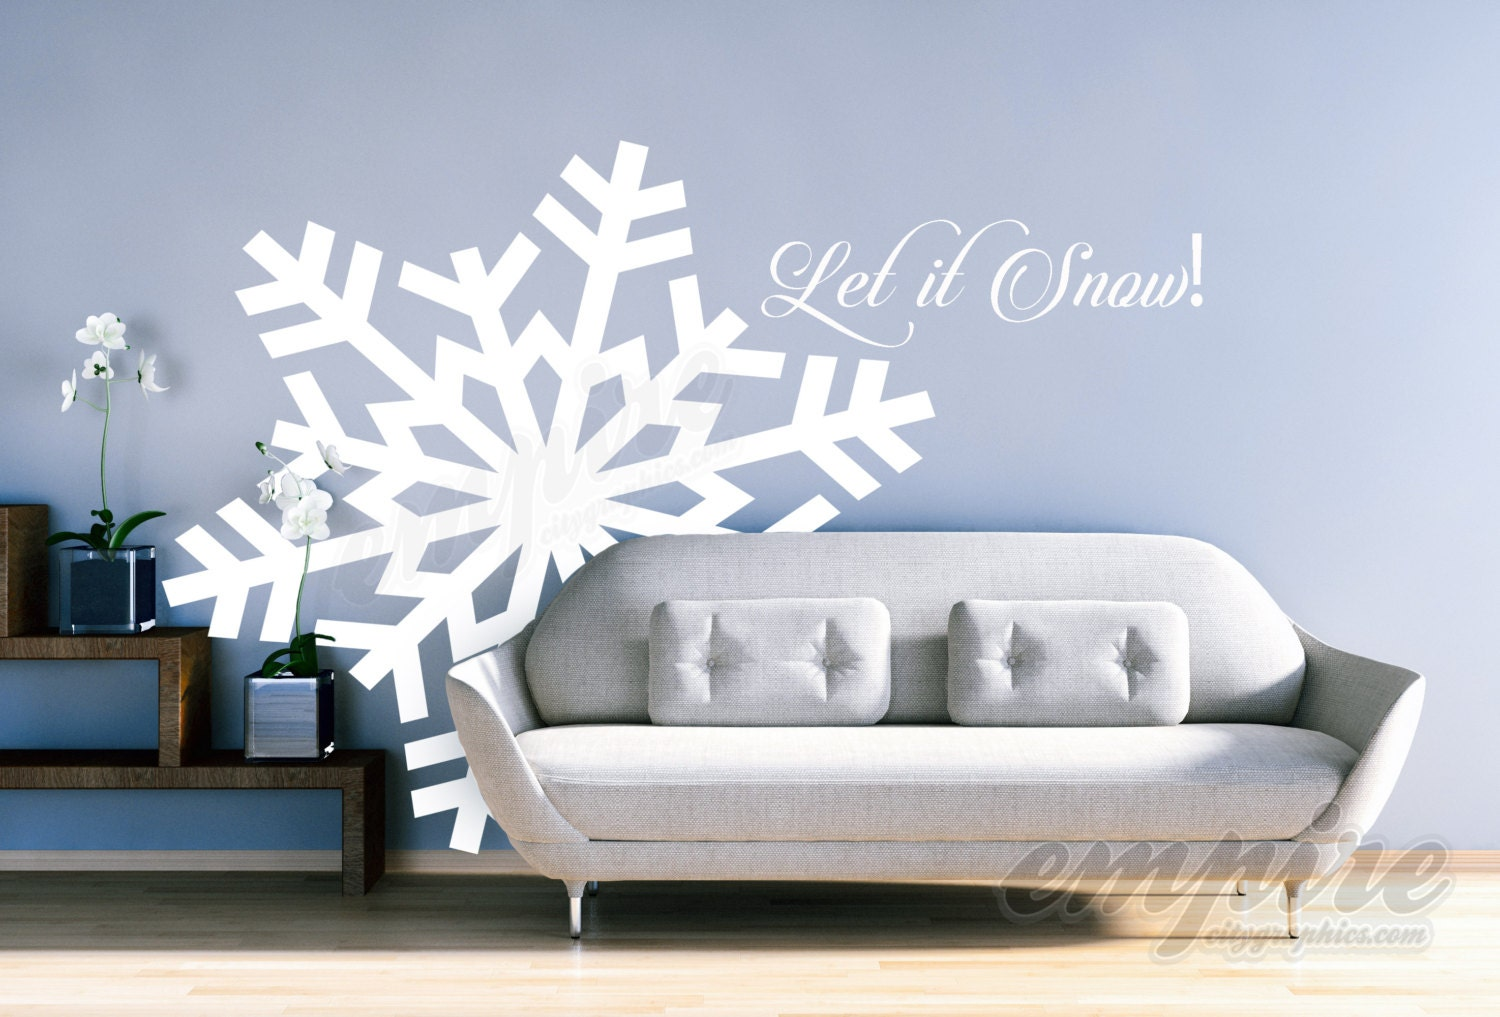 Large Snowflake Decals, Giant Snowflakes, Holiday Decals, Let It Snow Decal,  Frozen Decals, Snow Wall Decals, Let It Go Decals, Frozen Decor